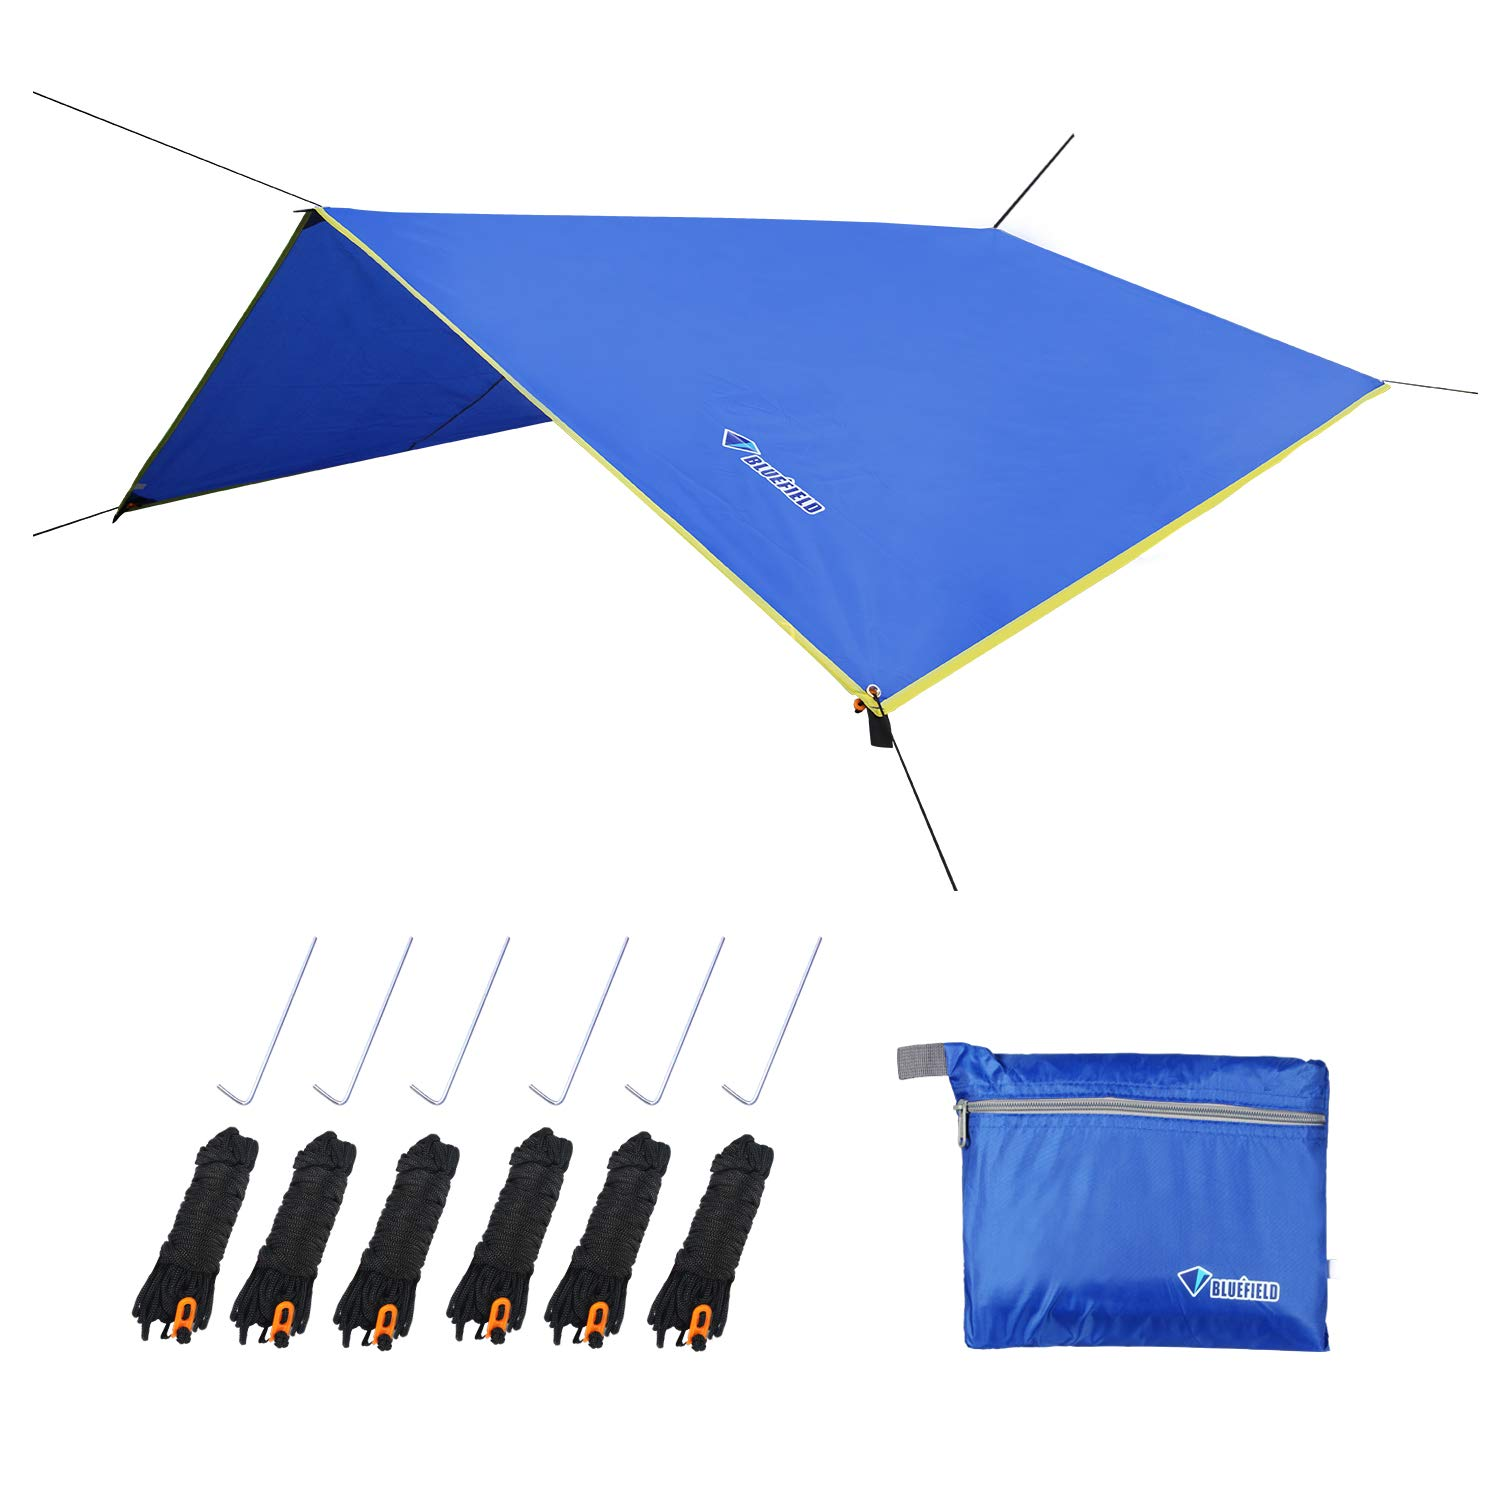 LLY Camping Tarp, Waterproof Picnic Mat, 4 in1 Multifunctional Tent Footprint for Camping, Hiking Survival Gear, Lightweight and Compact(71'' x 86'' Blue) by LLY